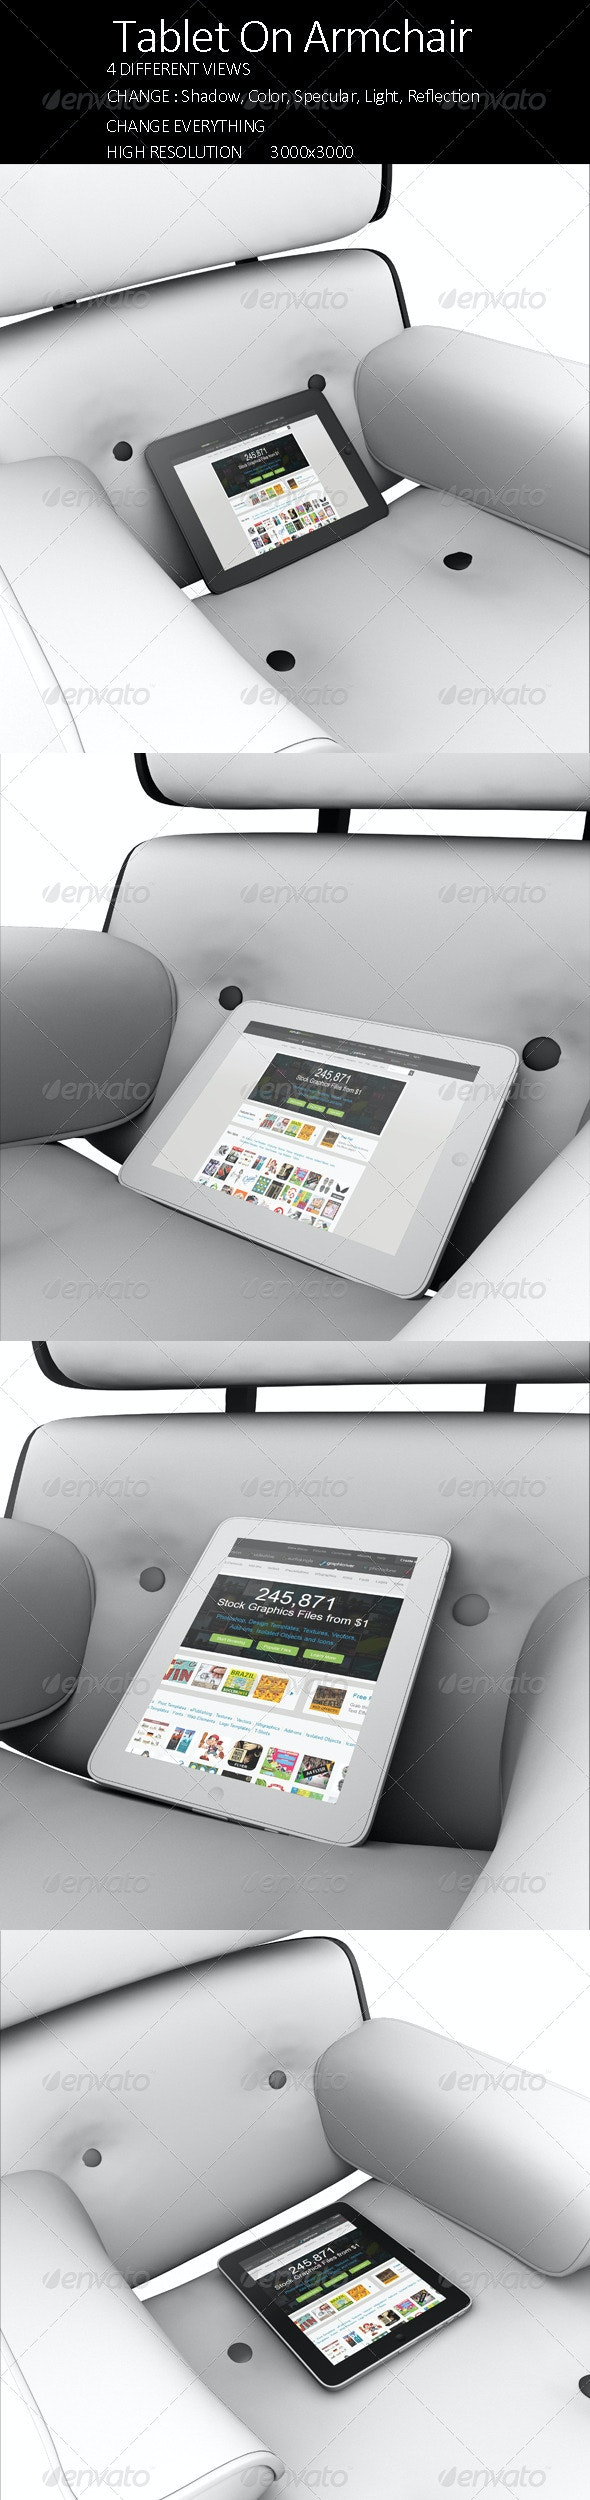 Tablet on Armchair - Product Mock-Ups Graphics